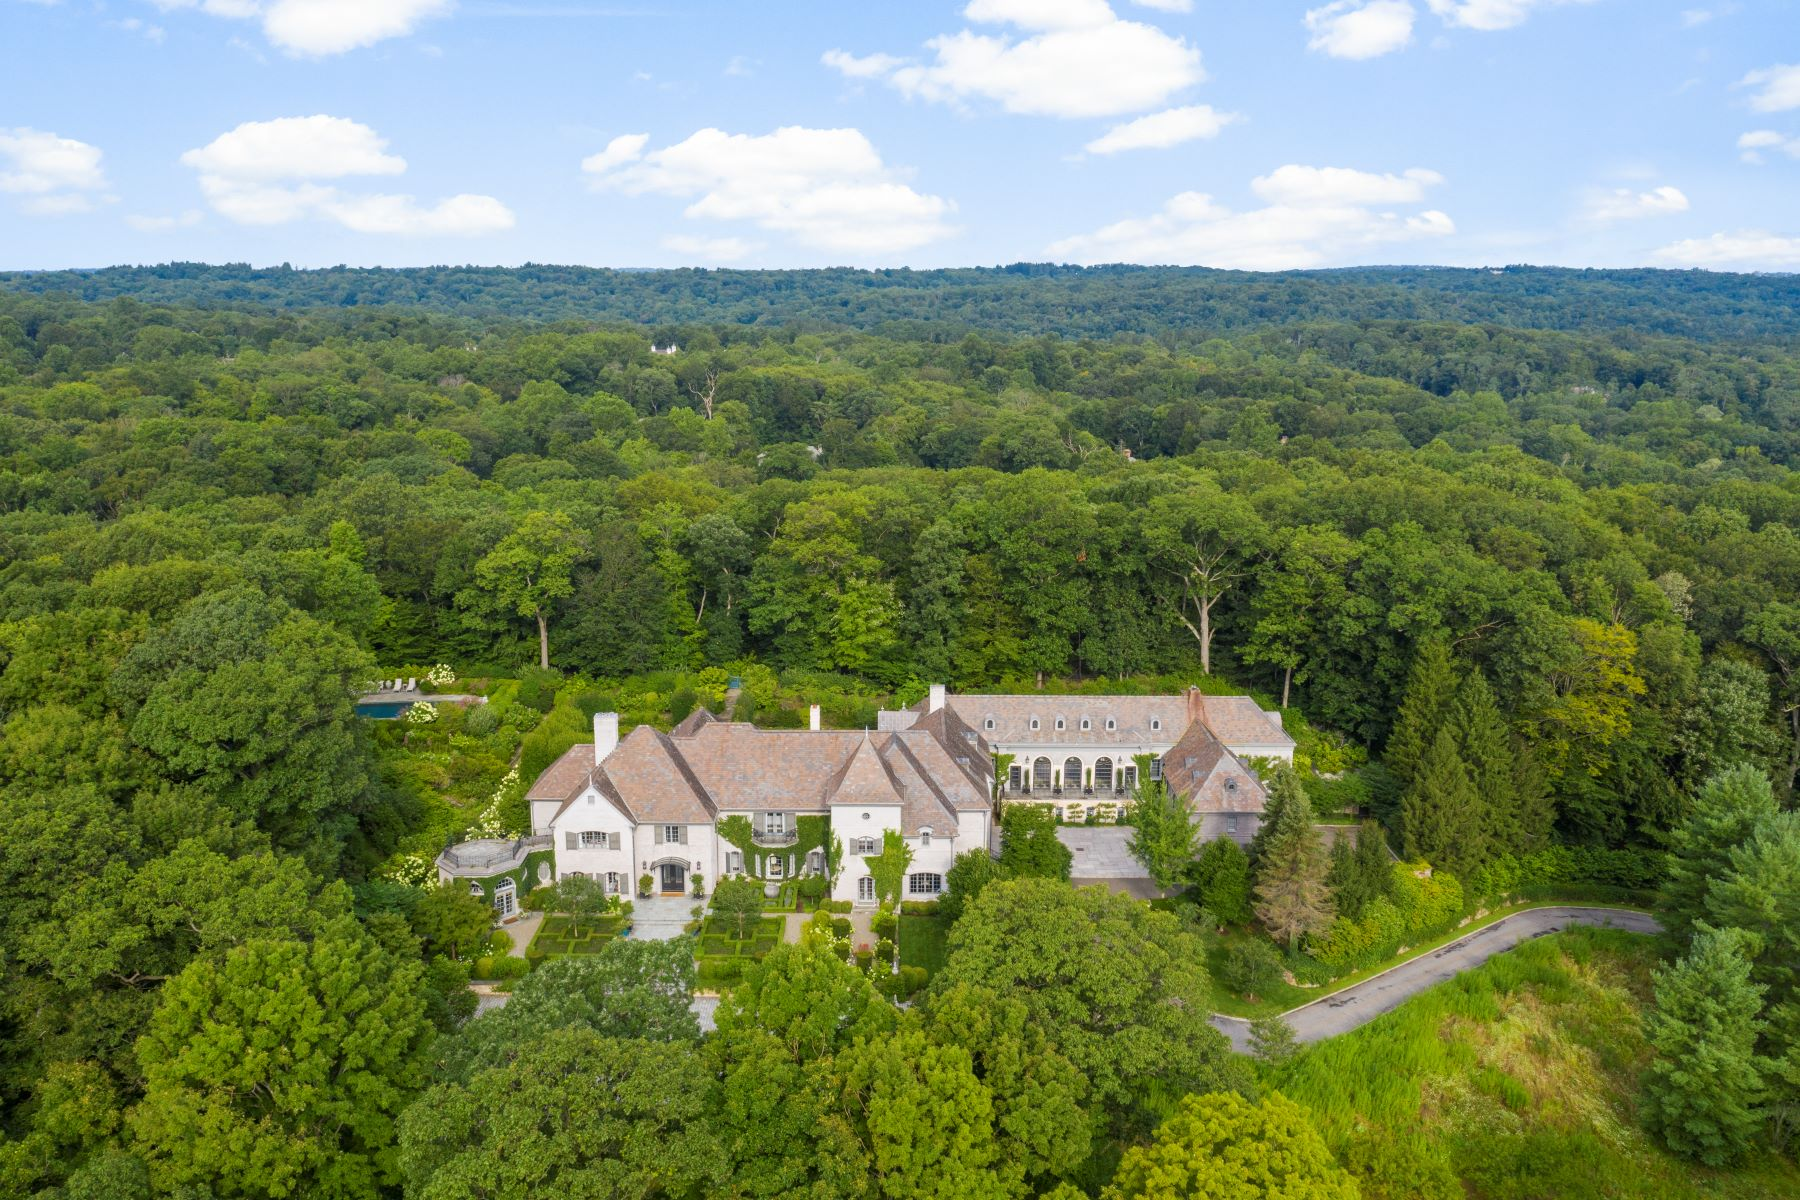 Single Family Homes for Sale at Cowdray Park In Conyers Farm 14 Cowdray Park Drive Greenwich, Connecticut 06831 United States